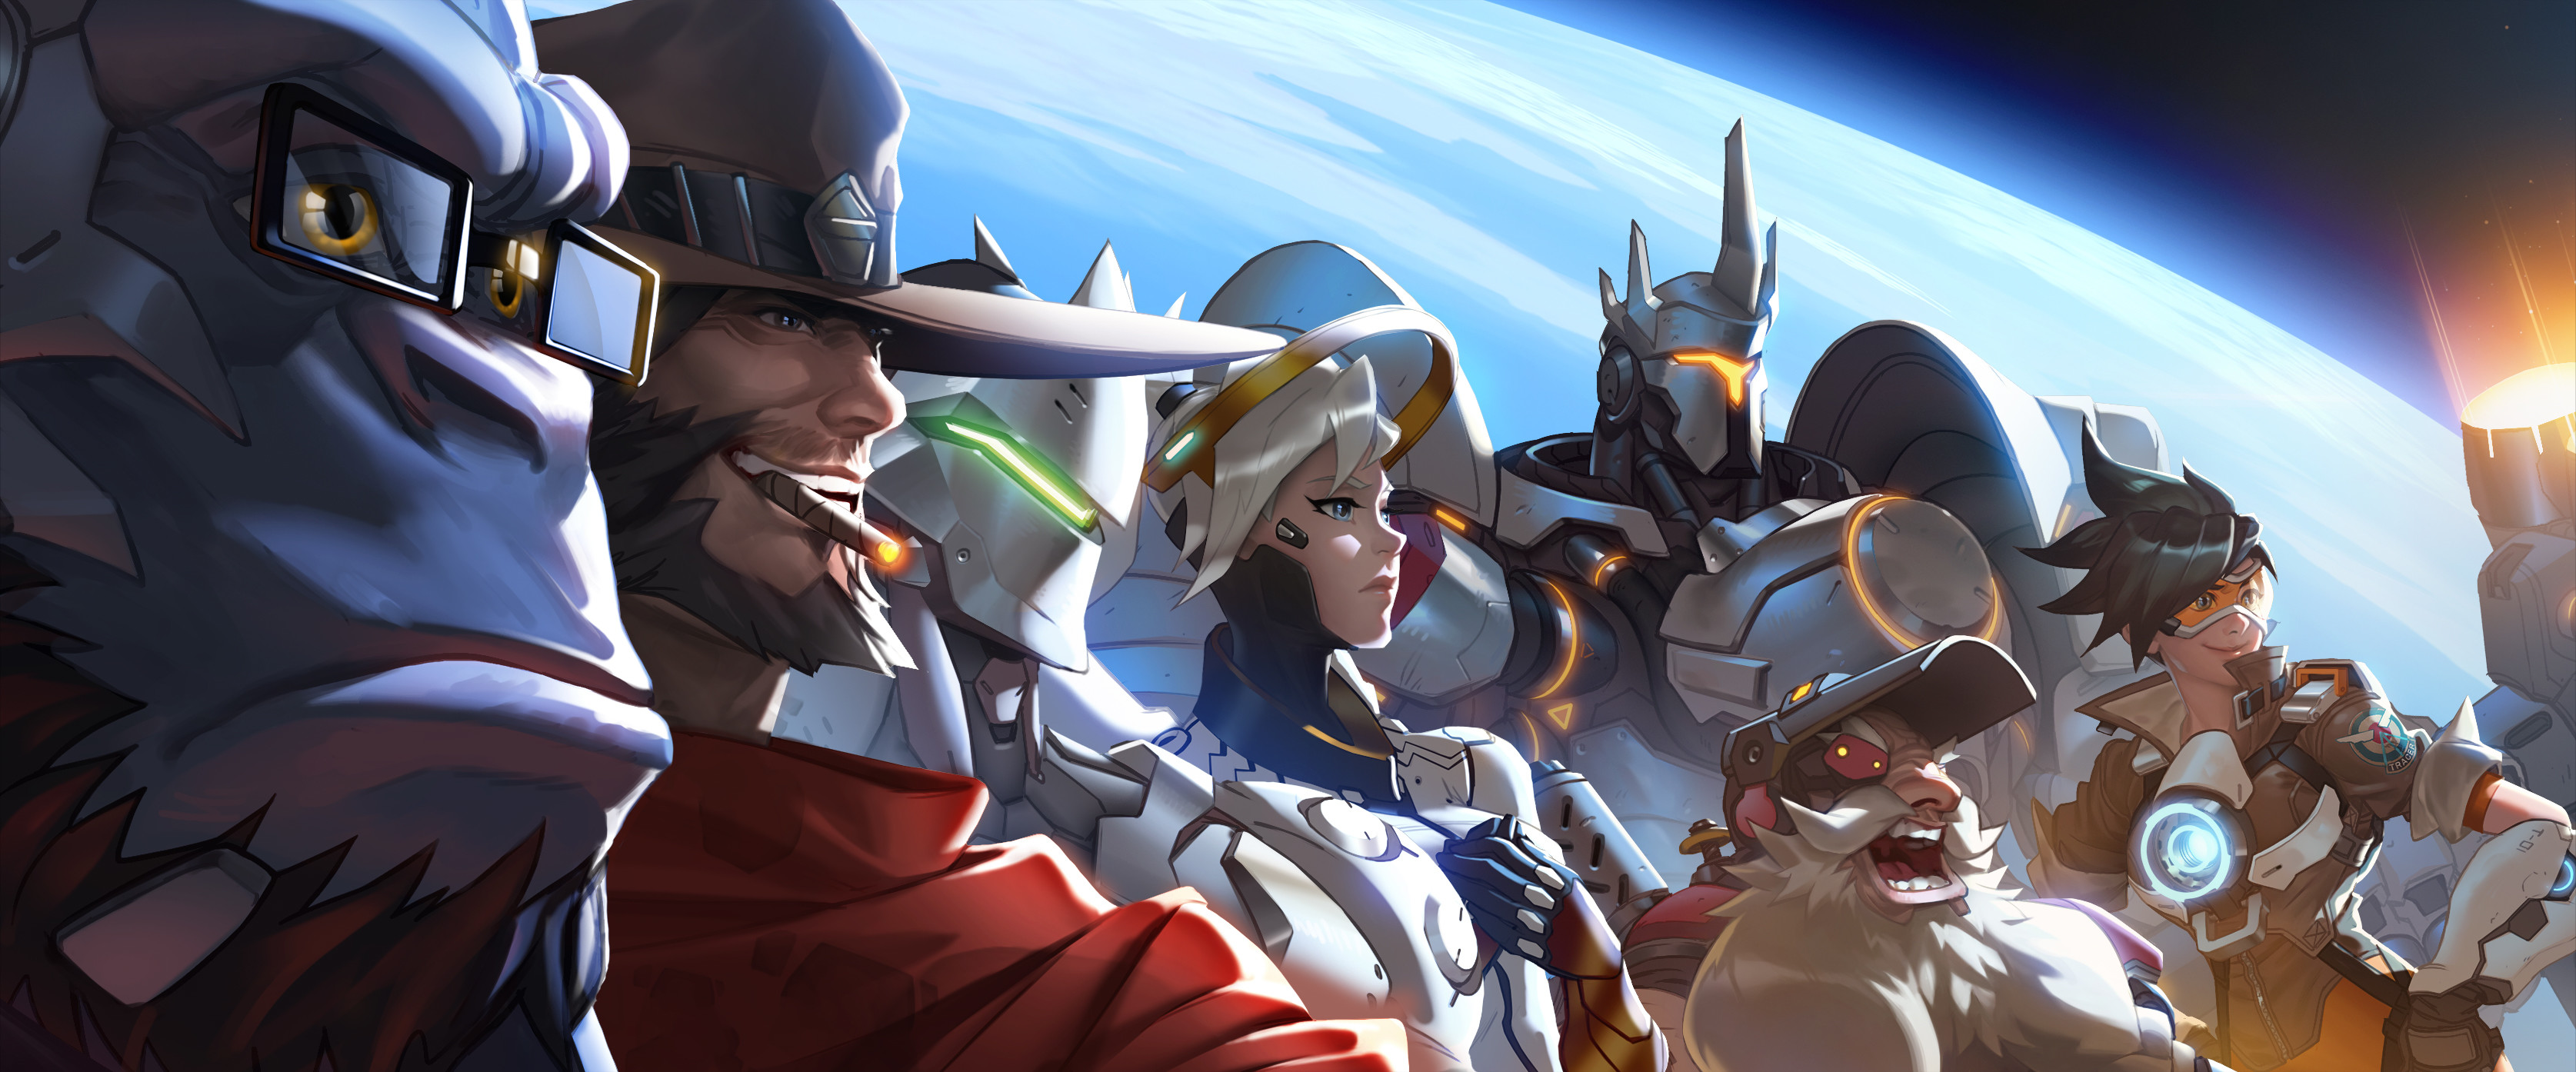 3349x1394 Video Game - Overwatch Winston (Overwatch) McCree (Overwatch) Mercy ( Overwatch)